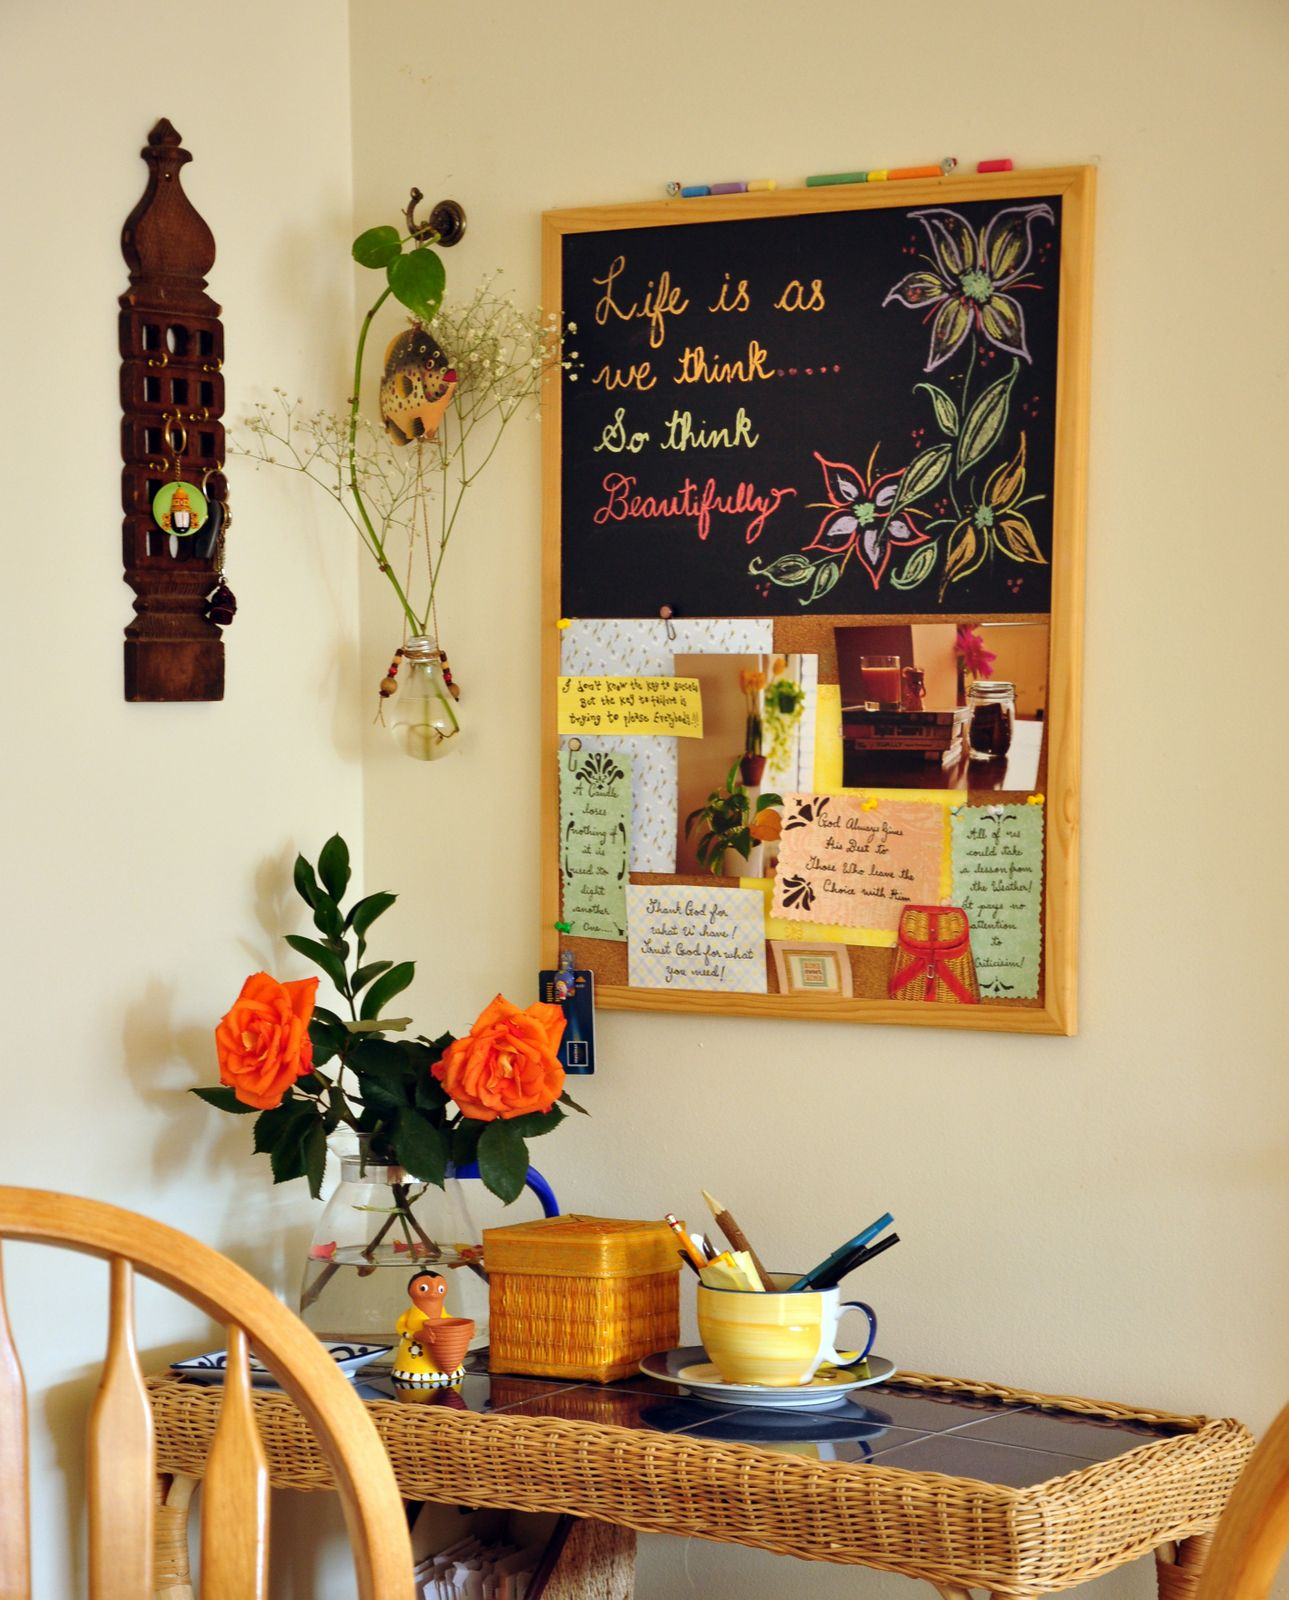 An Indian Decor Blog The Charming: An Indian Decor Blog: Flowers And